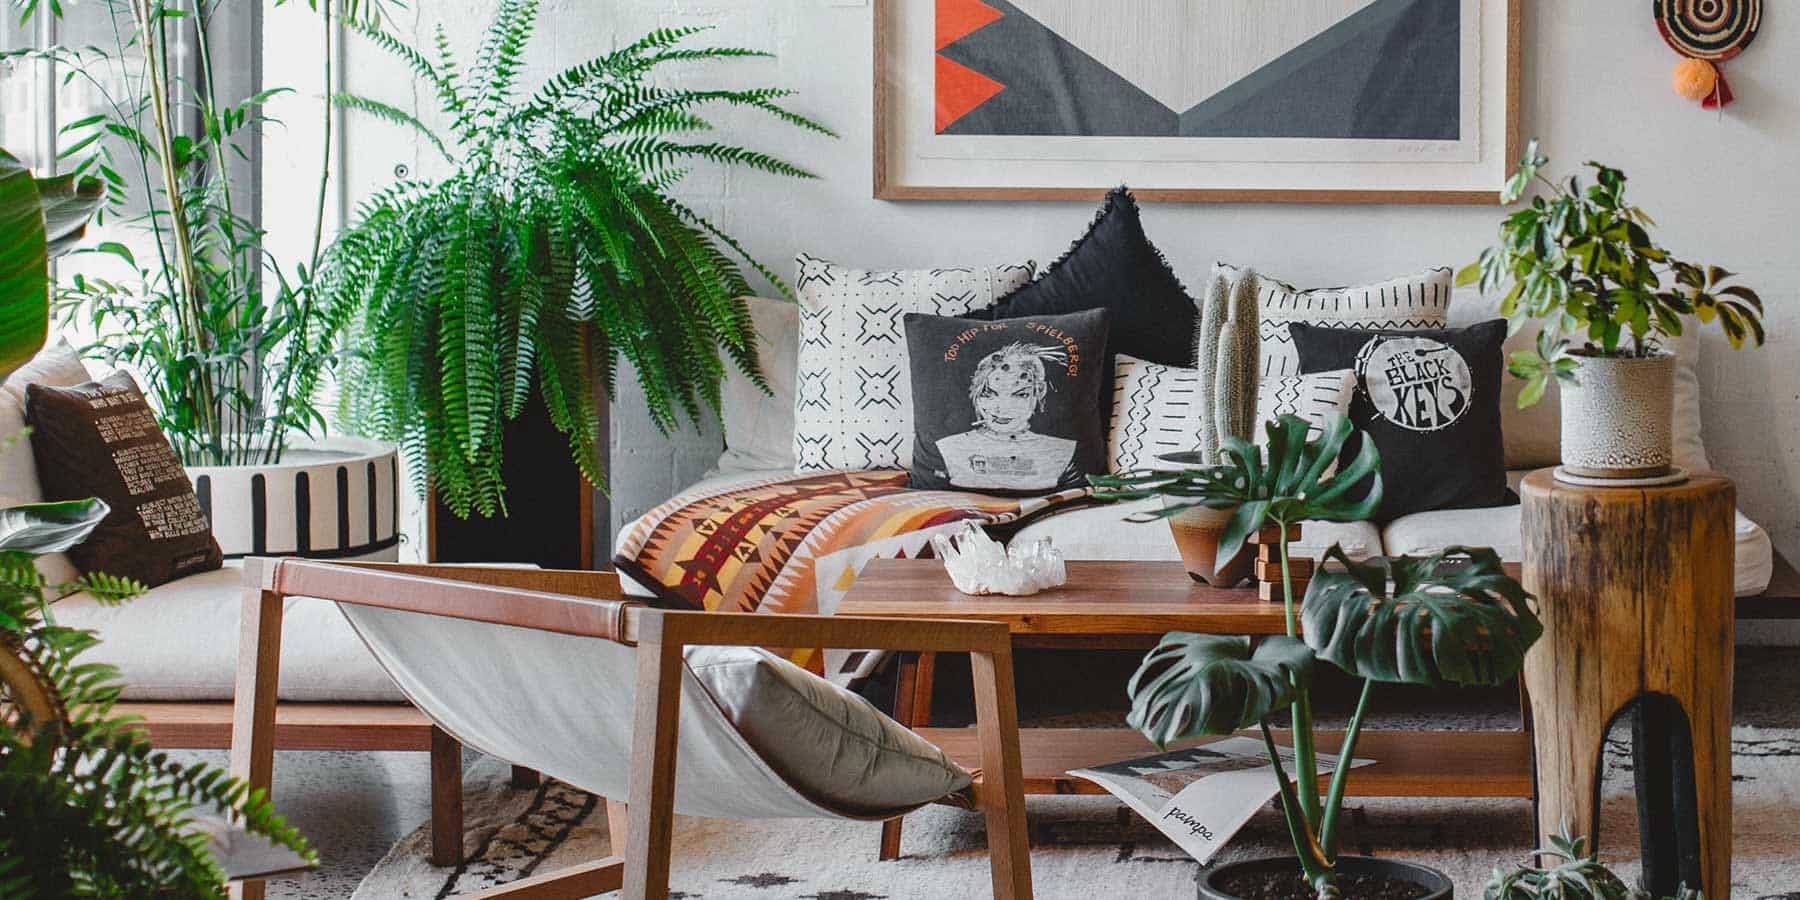 Boho Décor Ideas by RealCraft: Room decorated with multiple indoor plants